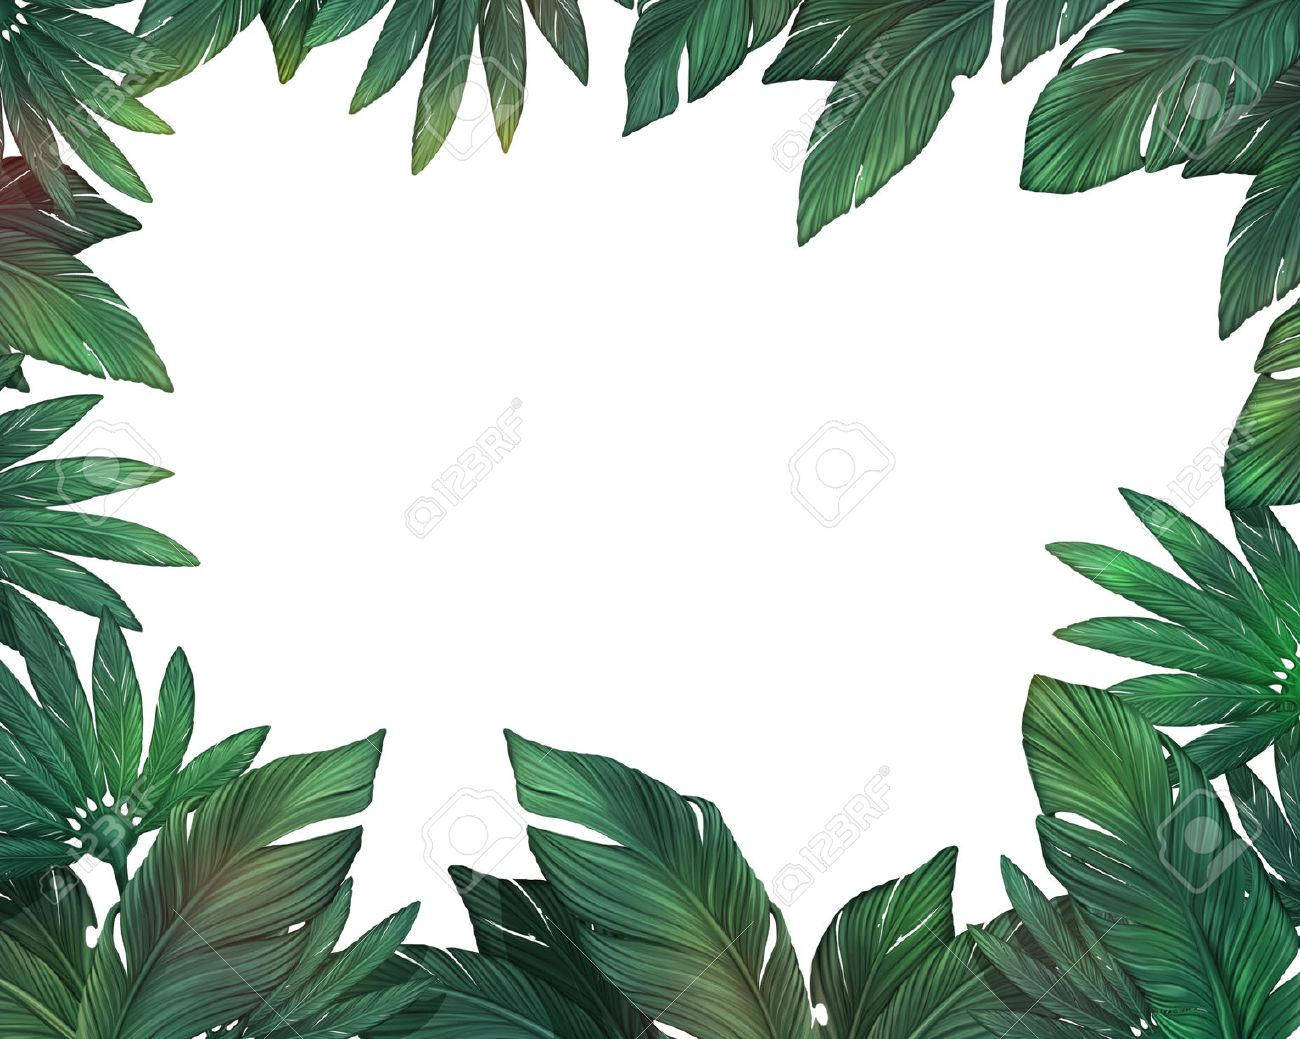 Tropical Leaves Frame Stock Photo Picture And Royalty Free Image Image 50154156 Find the perfect tropical leaf stock illustrations from getty images. tropical leaves frame